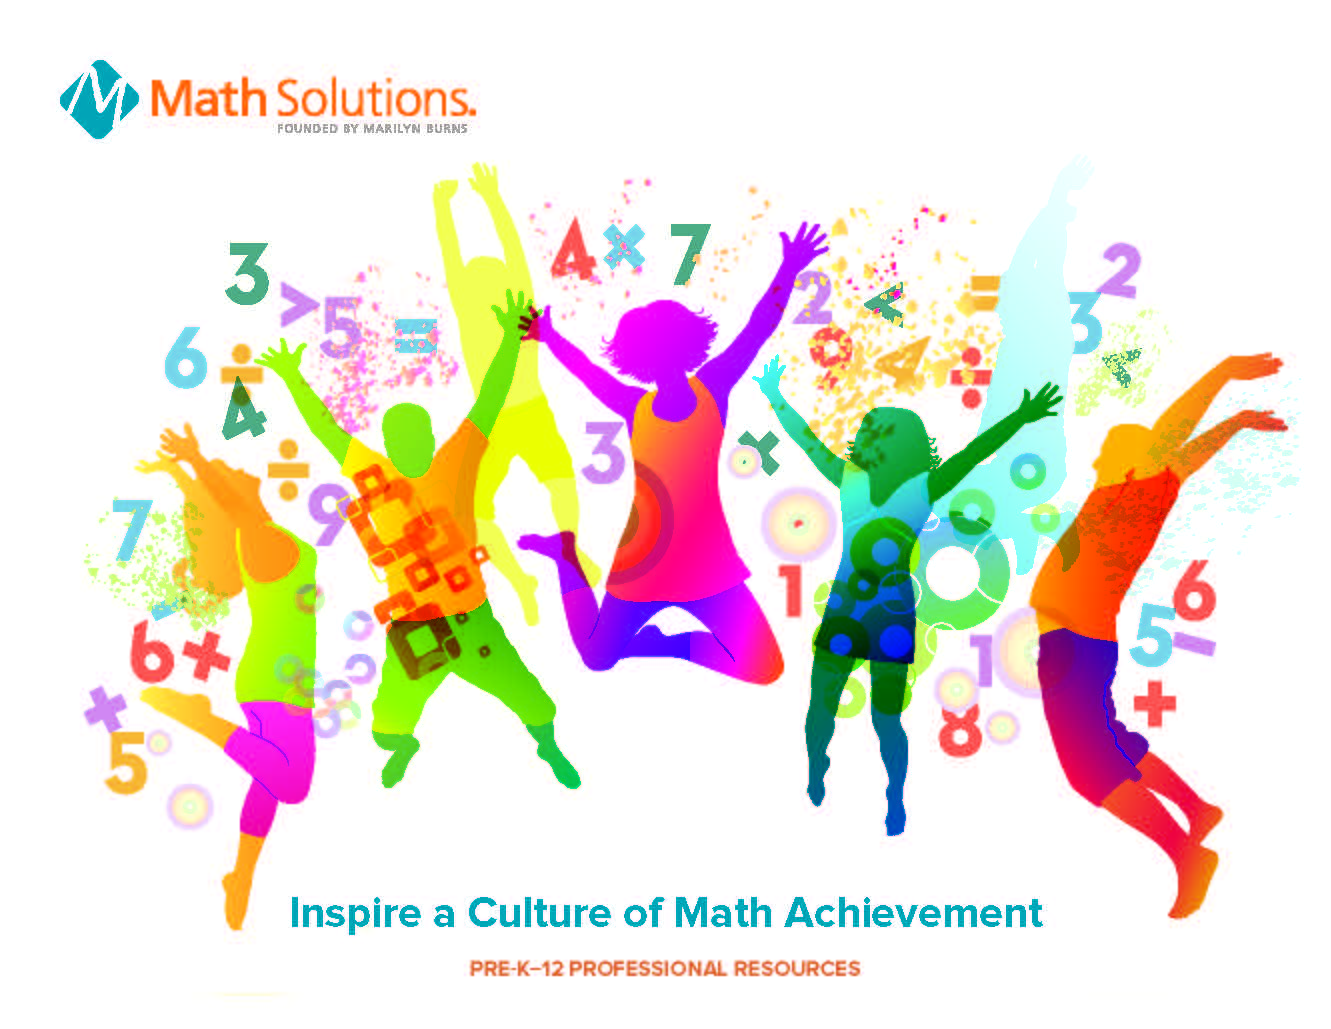 math solutions 2016 publications catalog